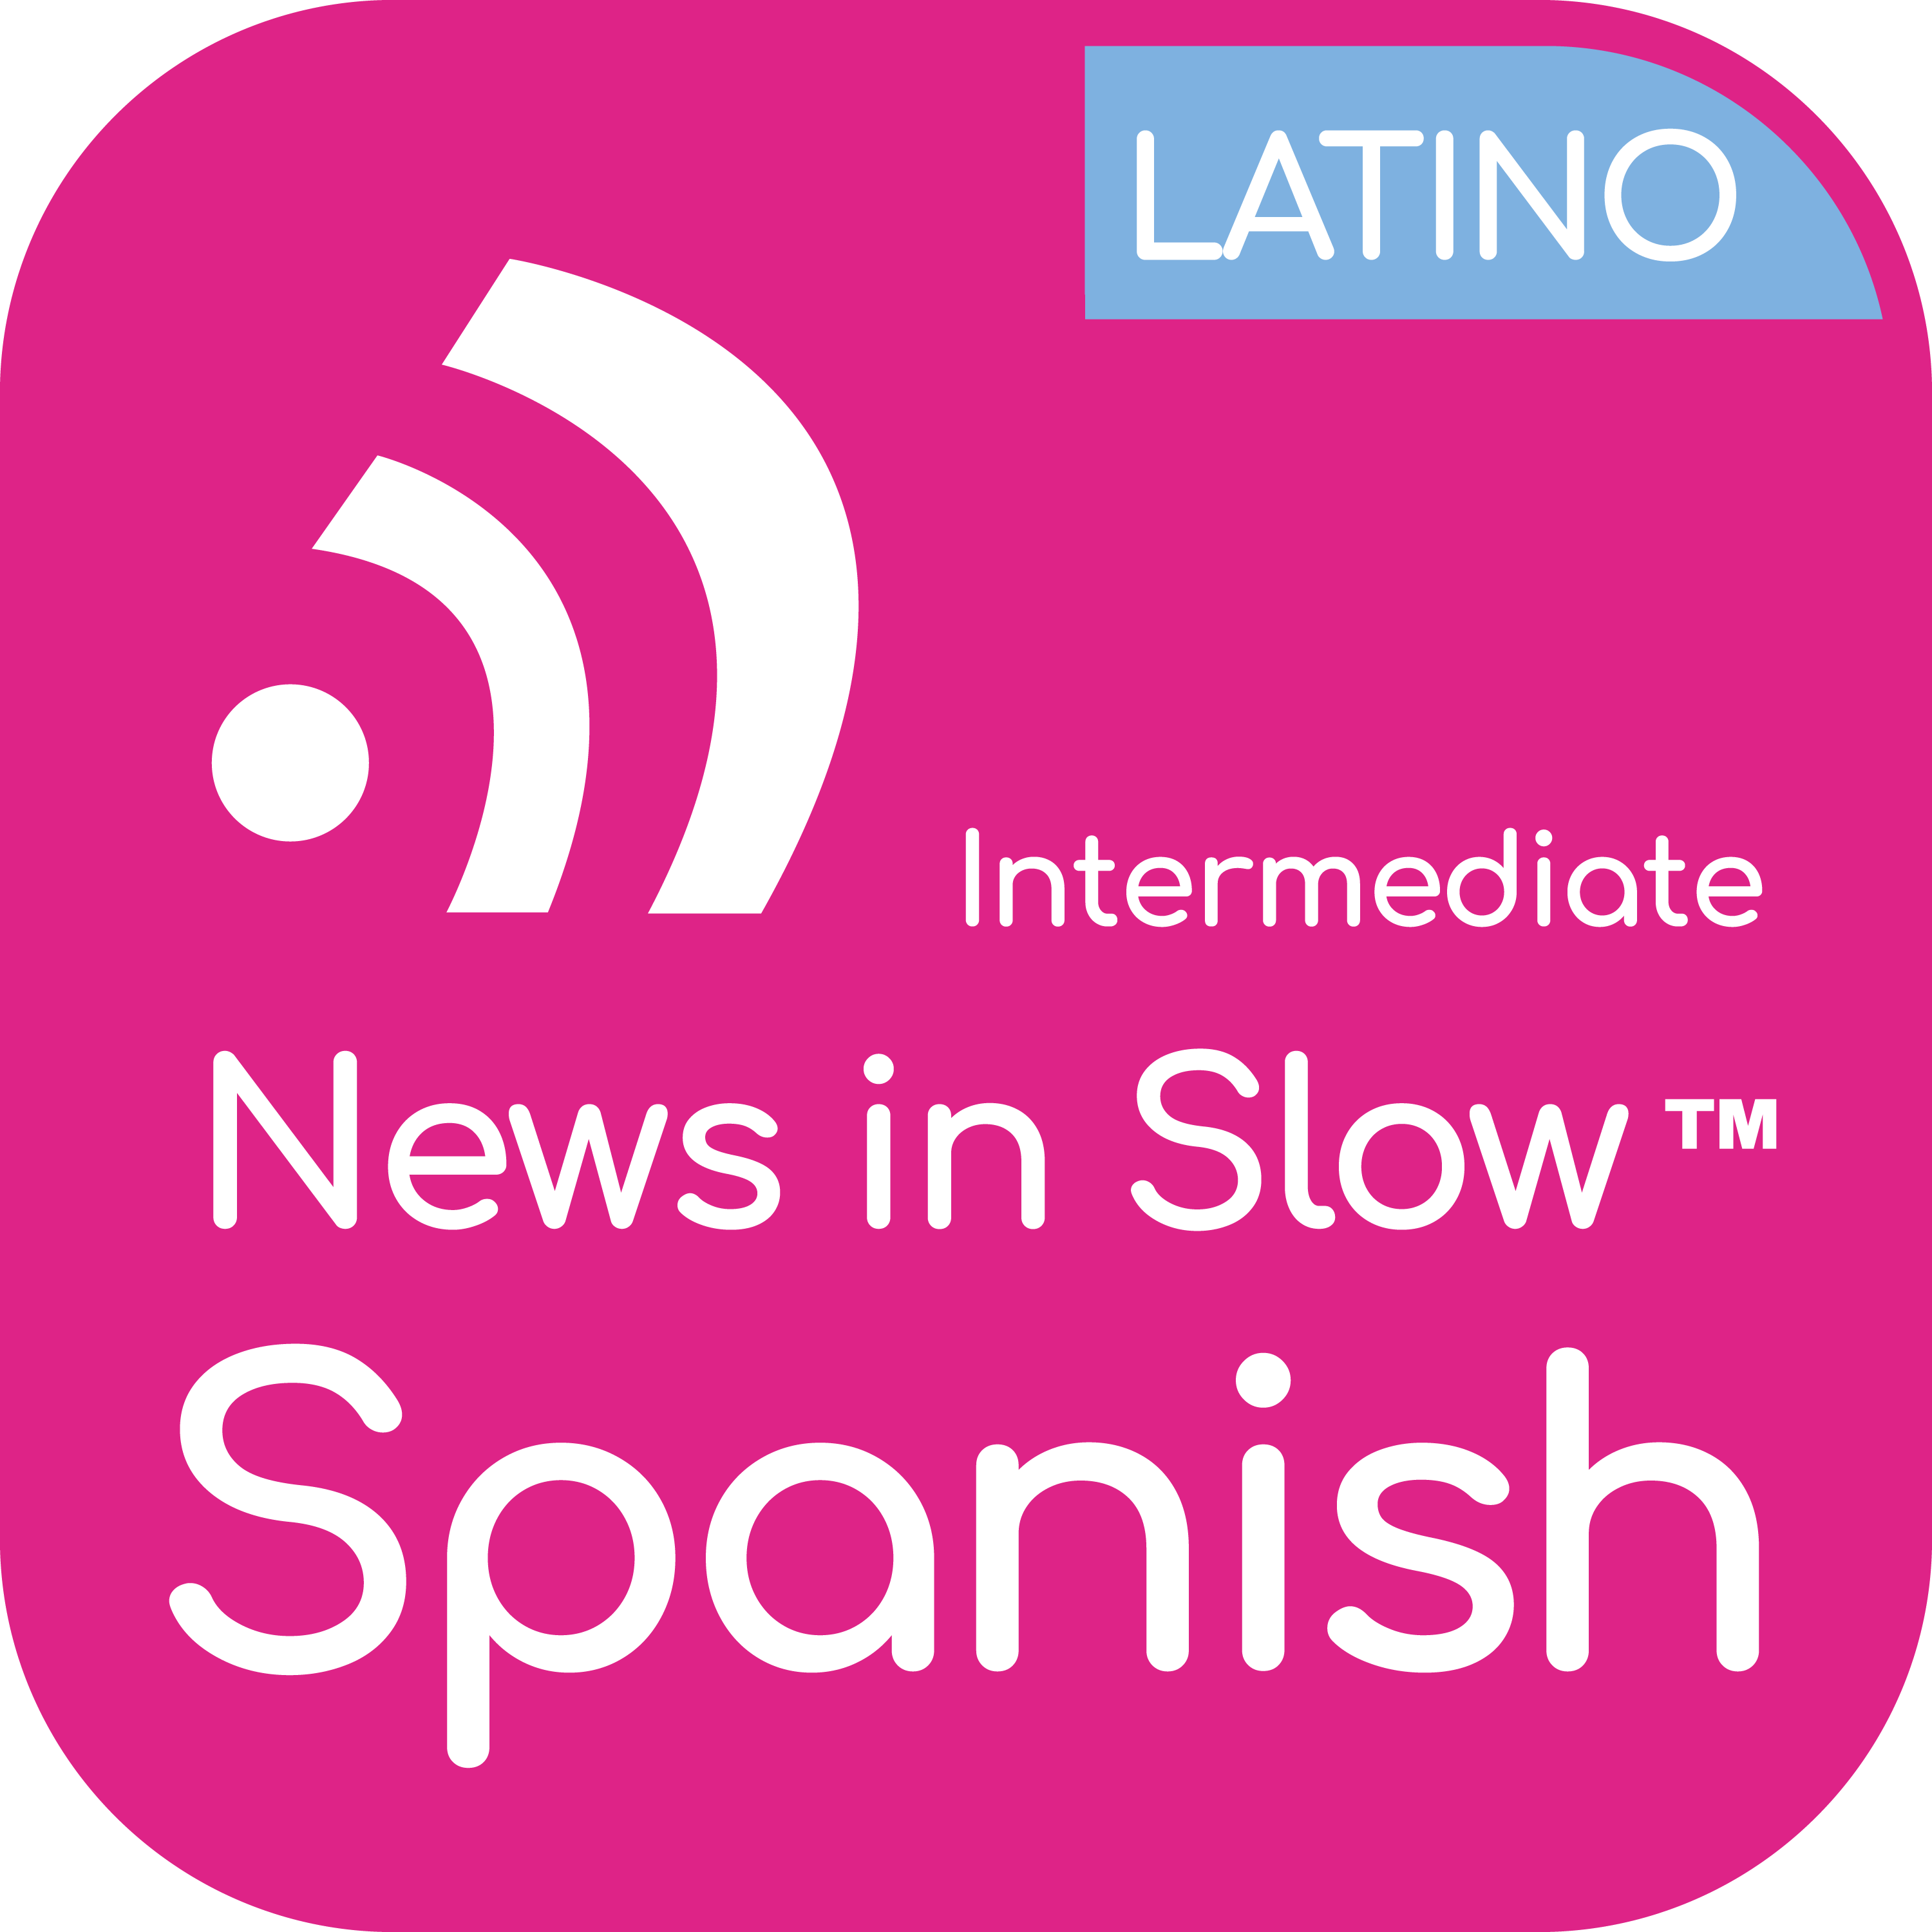 News In Slow Spanish Latino #405 - Learn Spanish through current events